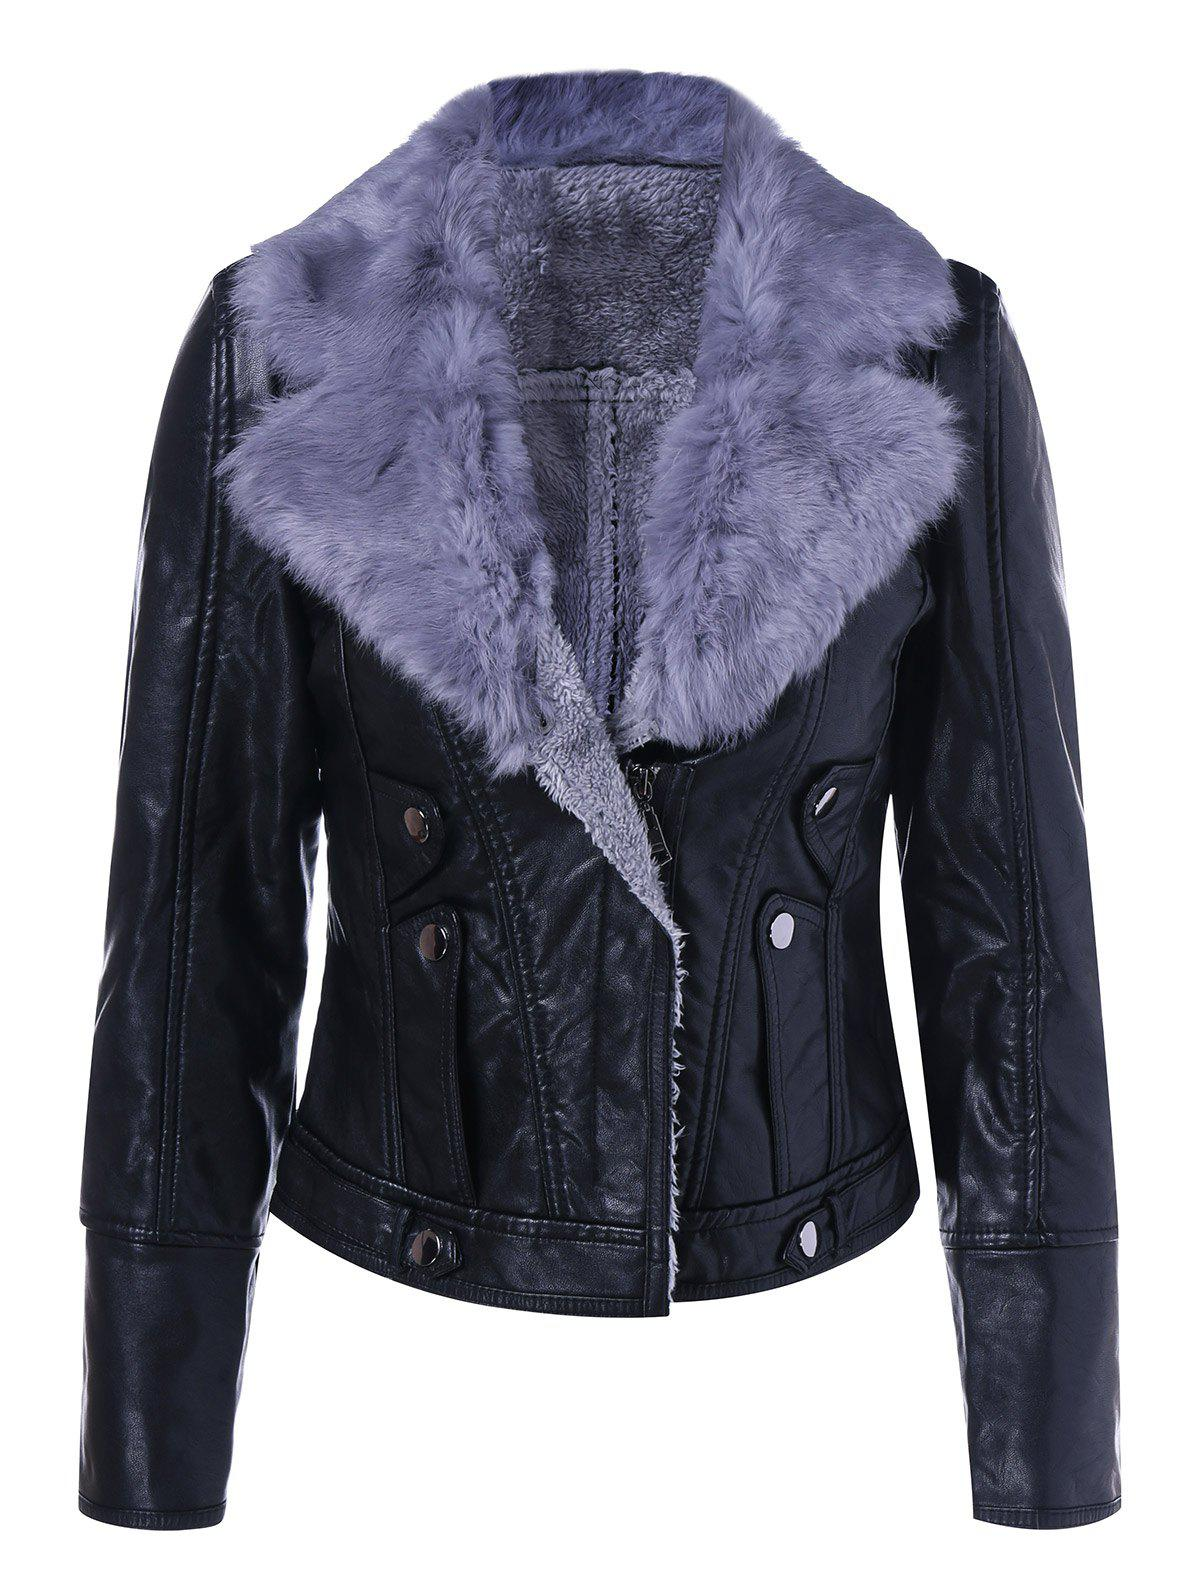 Sale Faux Leather Collar Winter Biker Jacket with Fur Collar